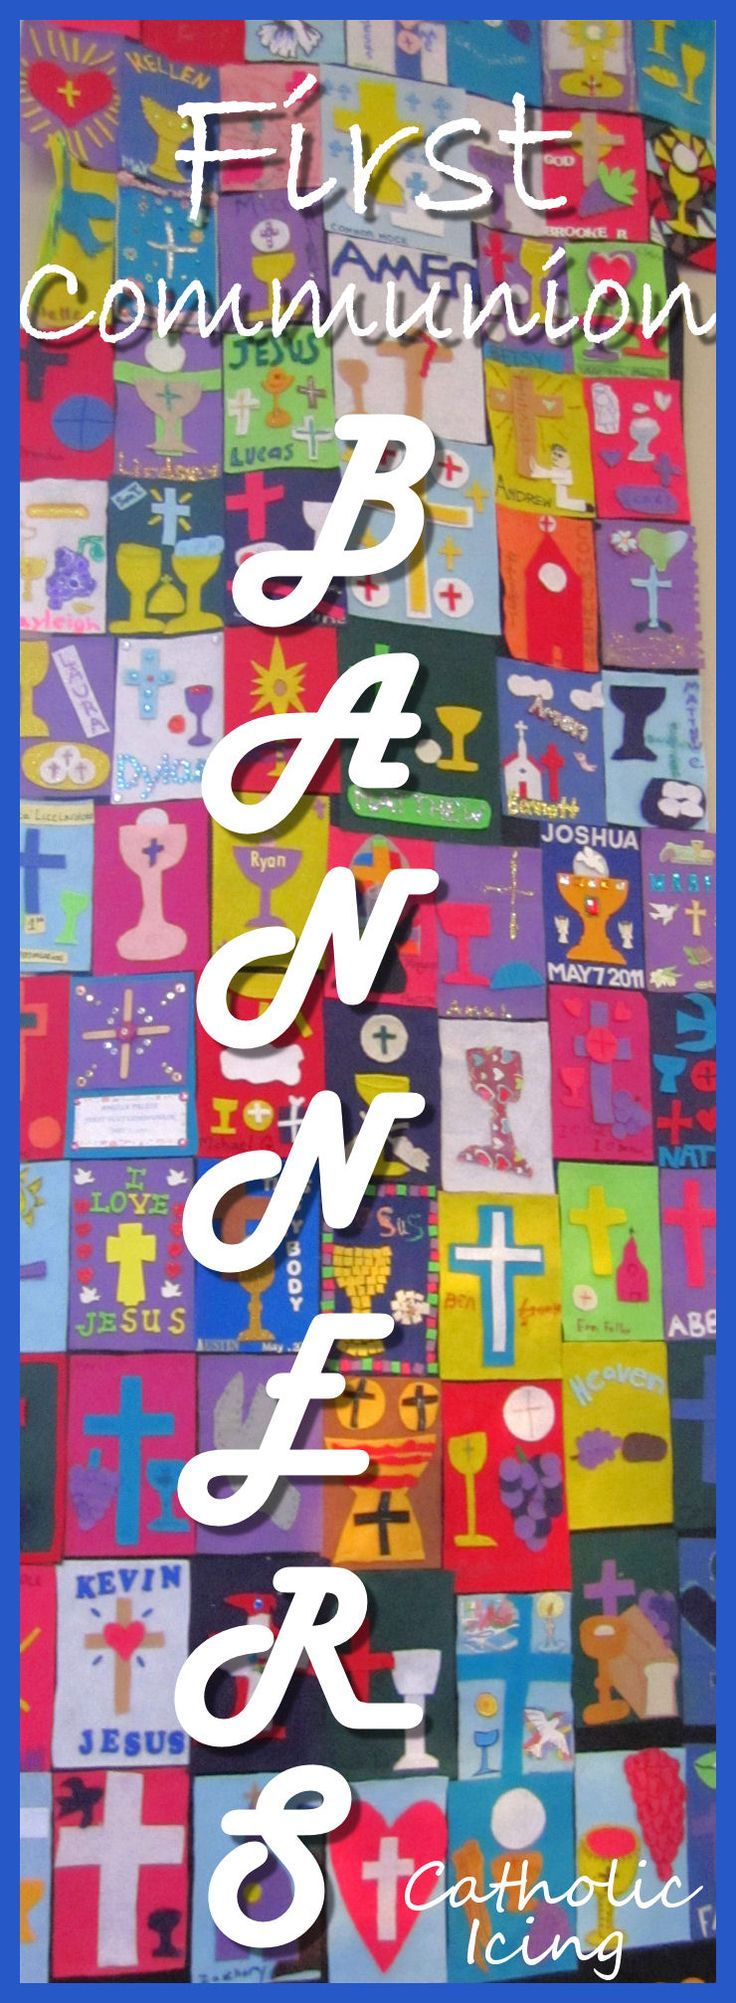 Over 90 examples of First Communion Banners!